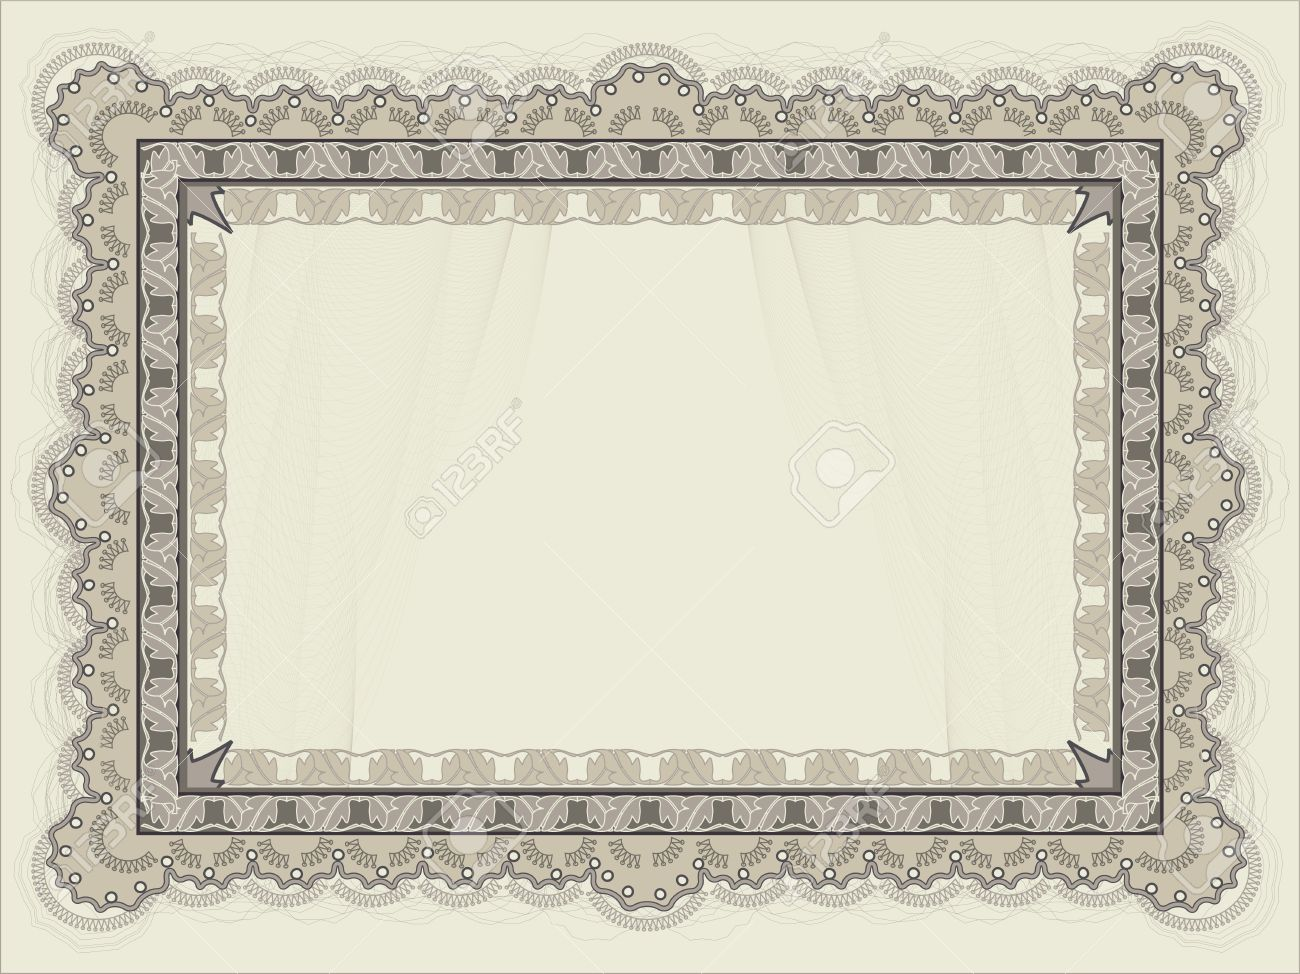 Blank Horizontal Certificate Template Royalty Free Cliparts, Vectors ...